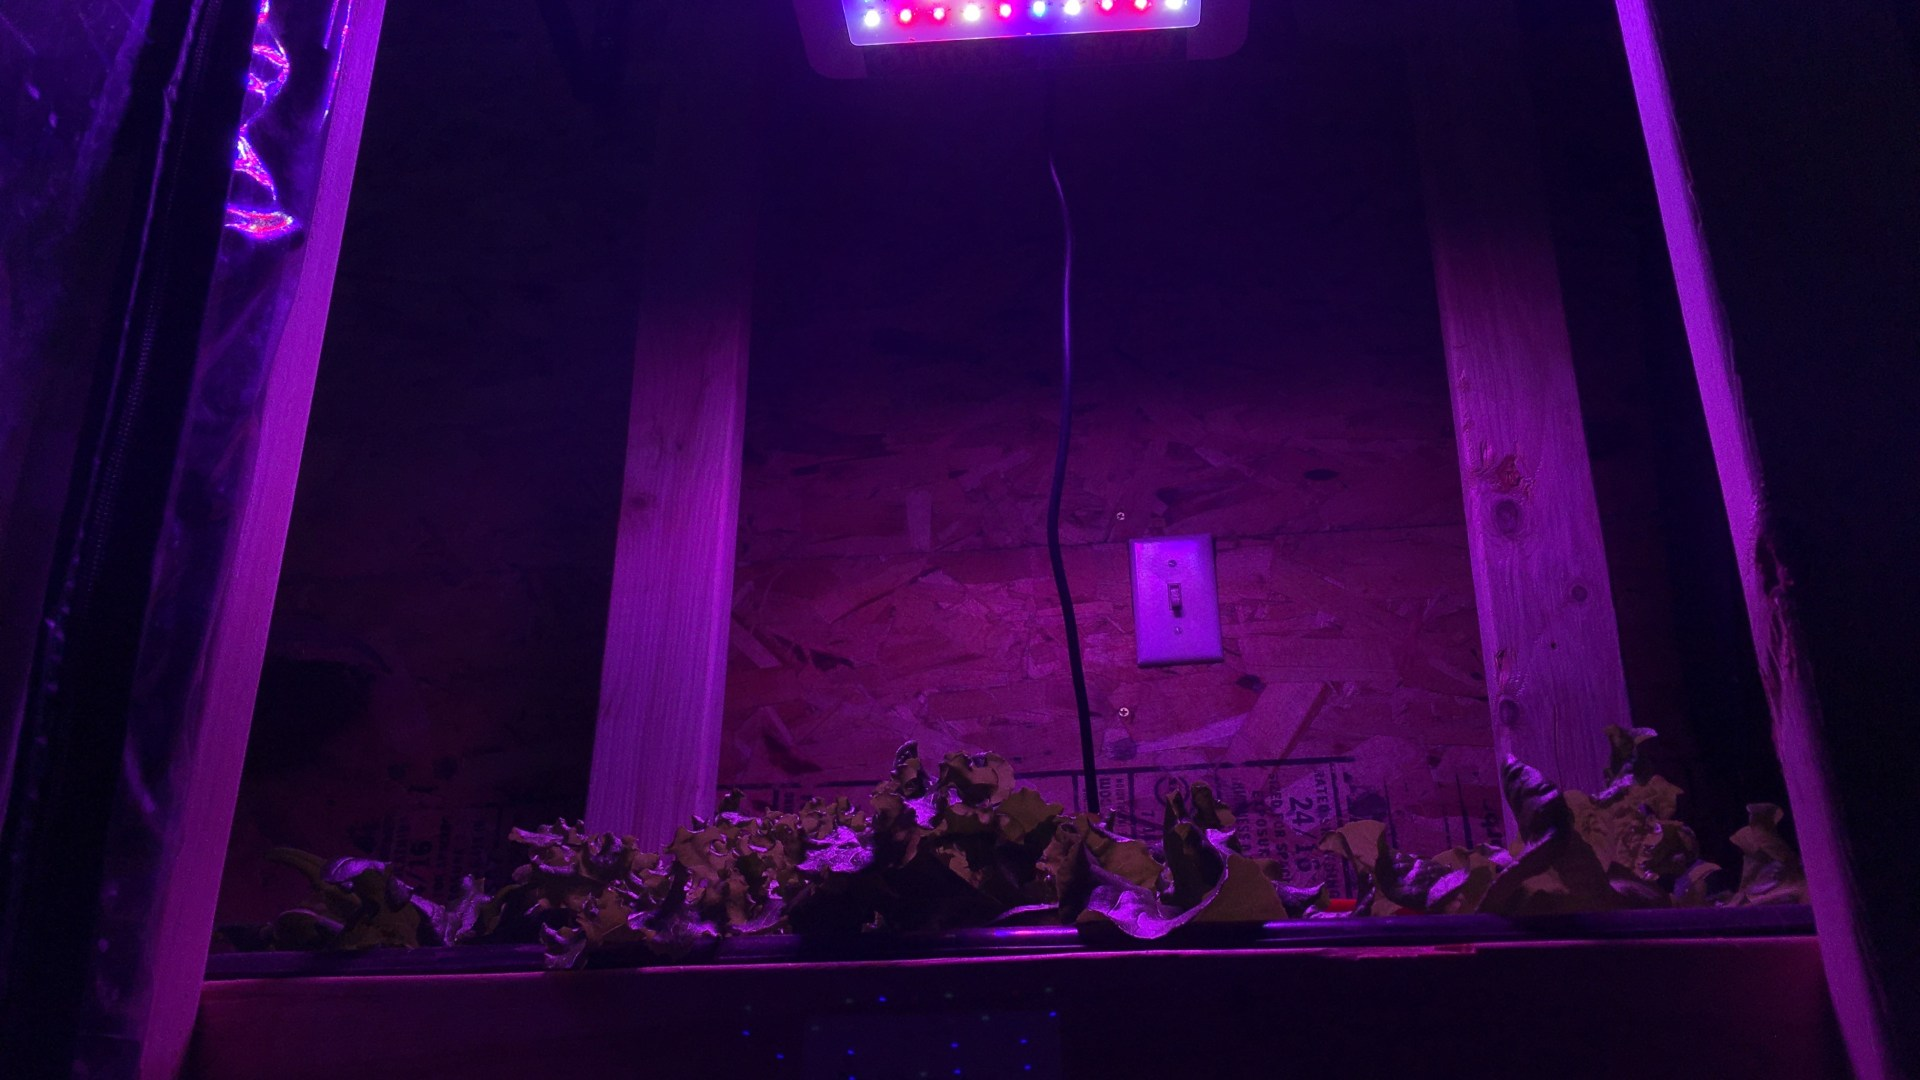 Hydroponic lettuce under LED grow light